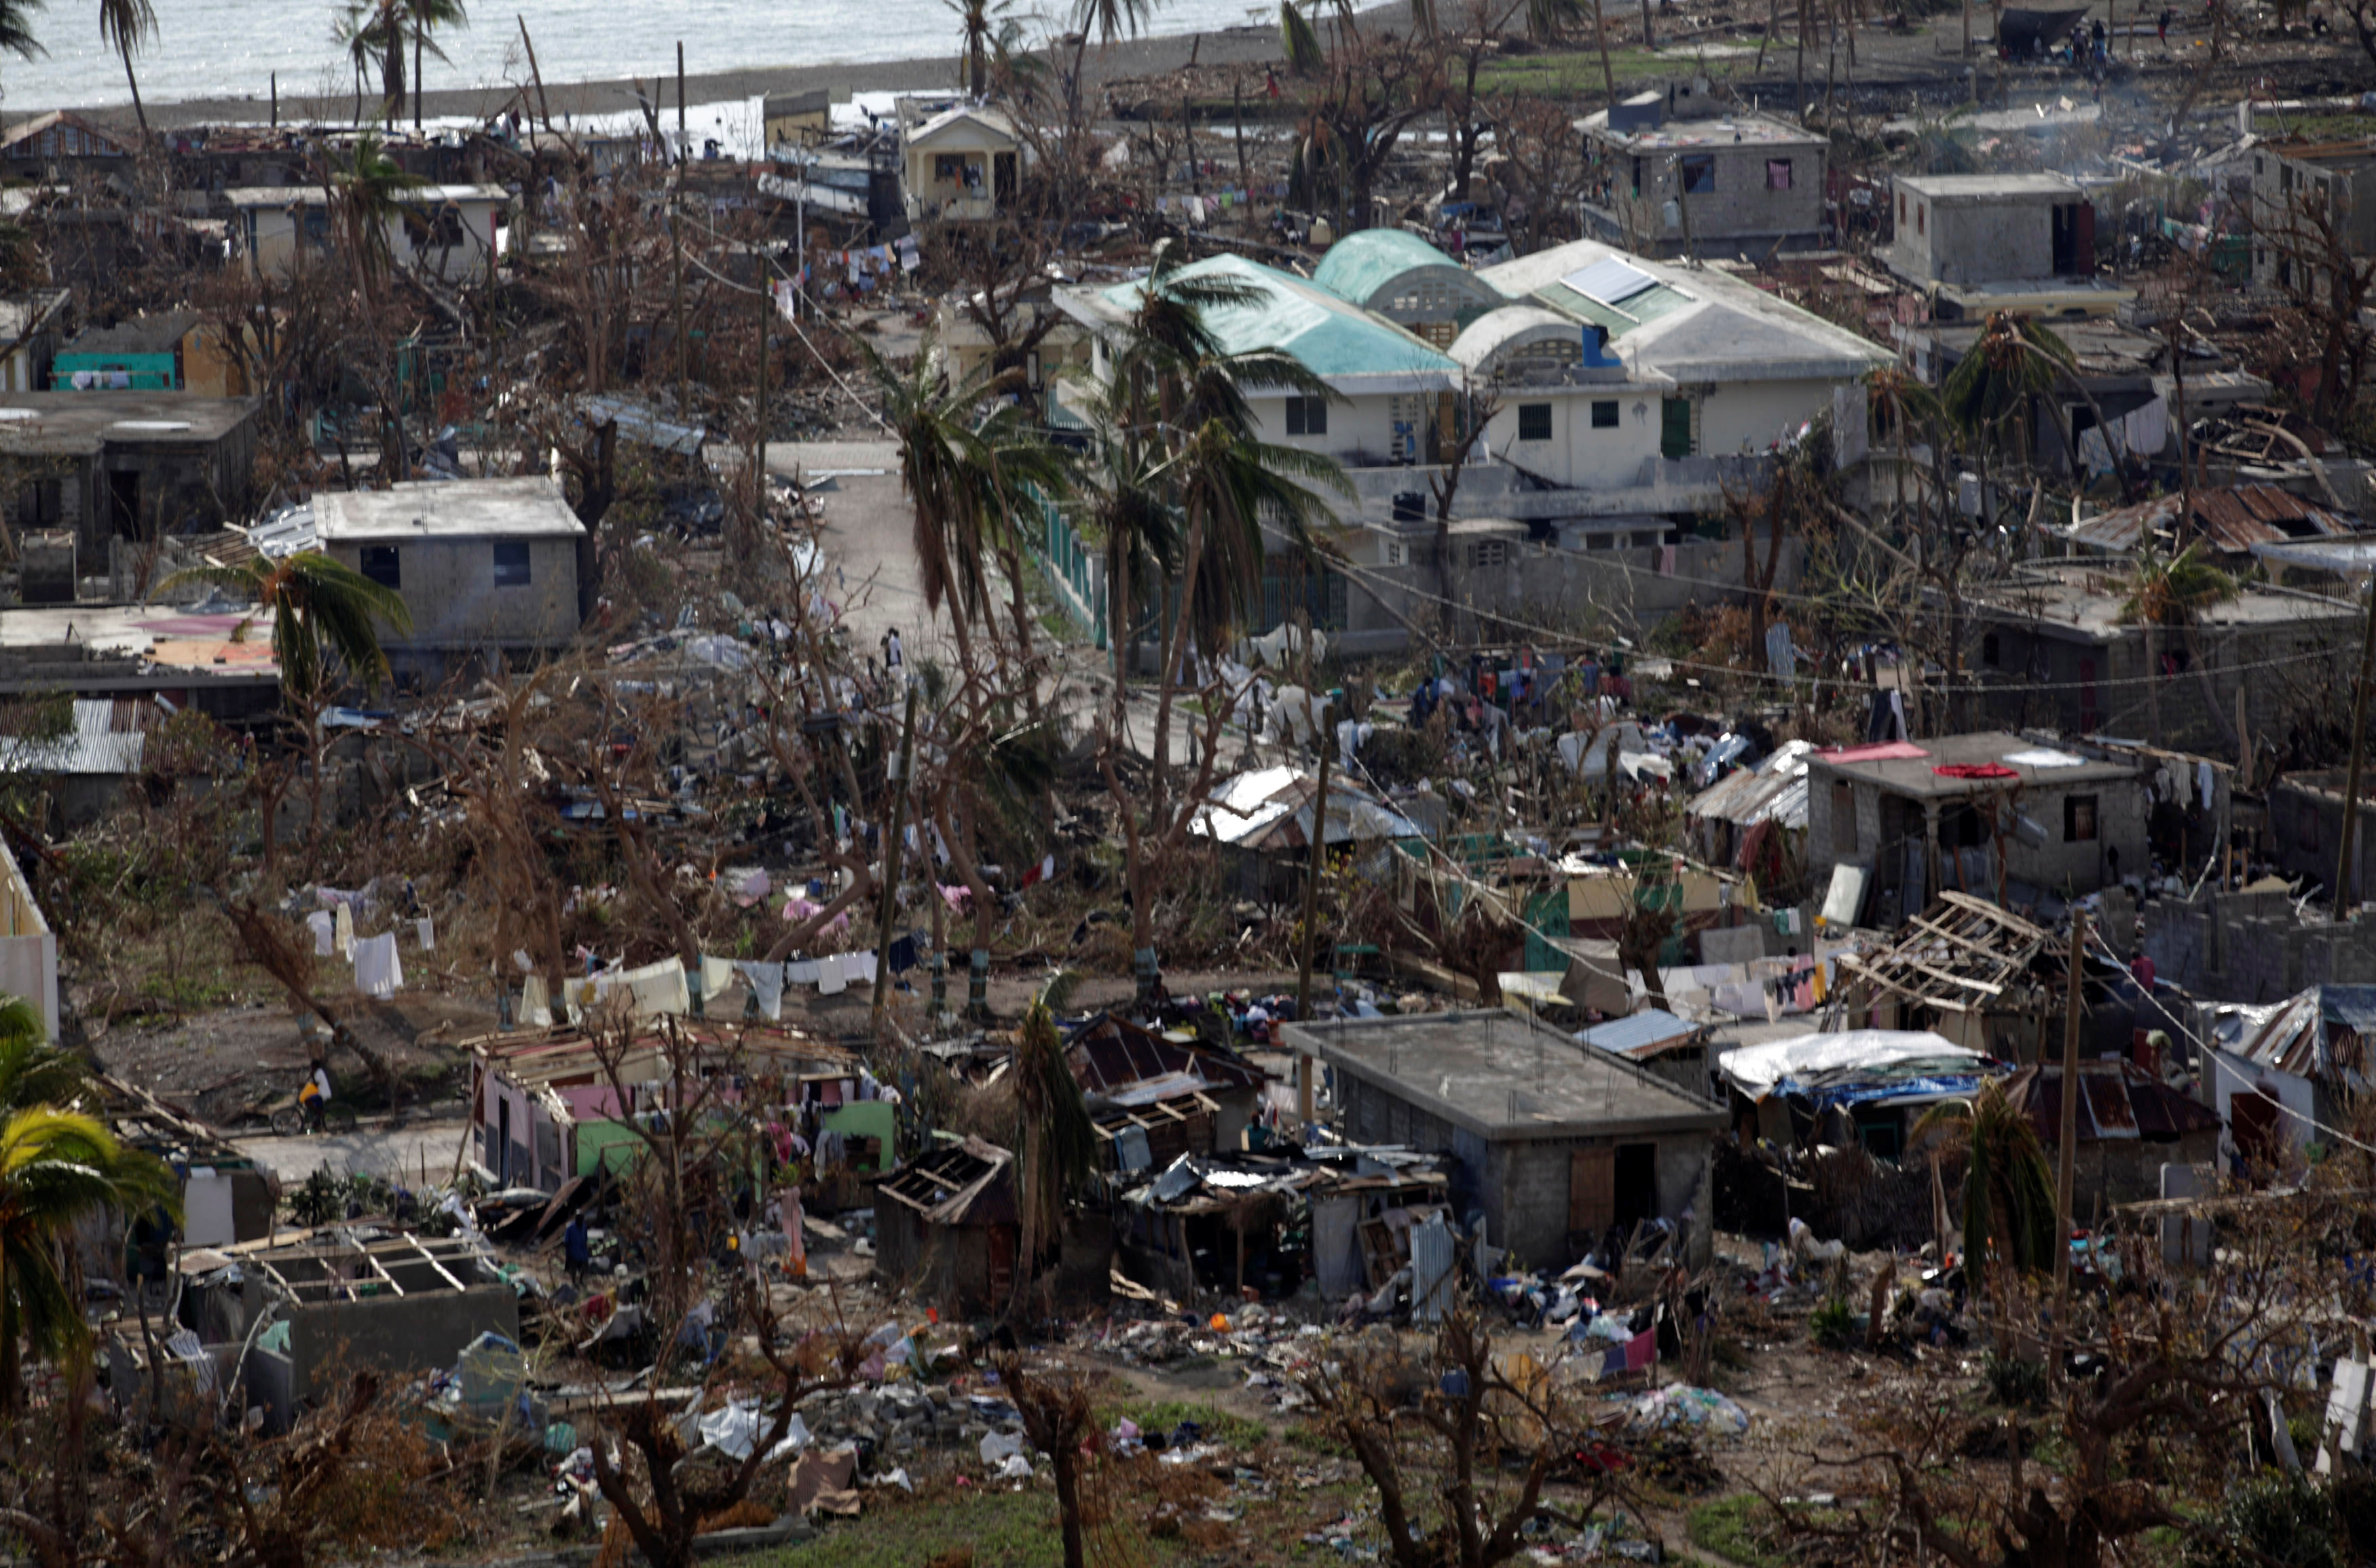 Hurricane destruction was heavy in Coteaux in the southern tip of Haiti. The United Nations estimated that at least 350,000 people were in need of humanitarian aid after the storm. Photo by Andres Martinez Casares/Reuters